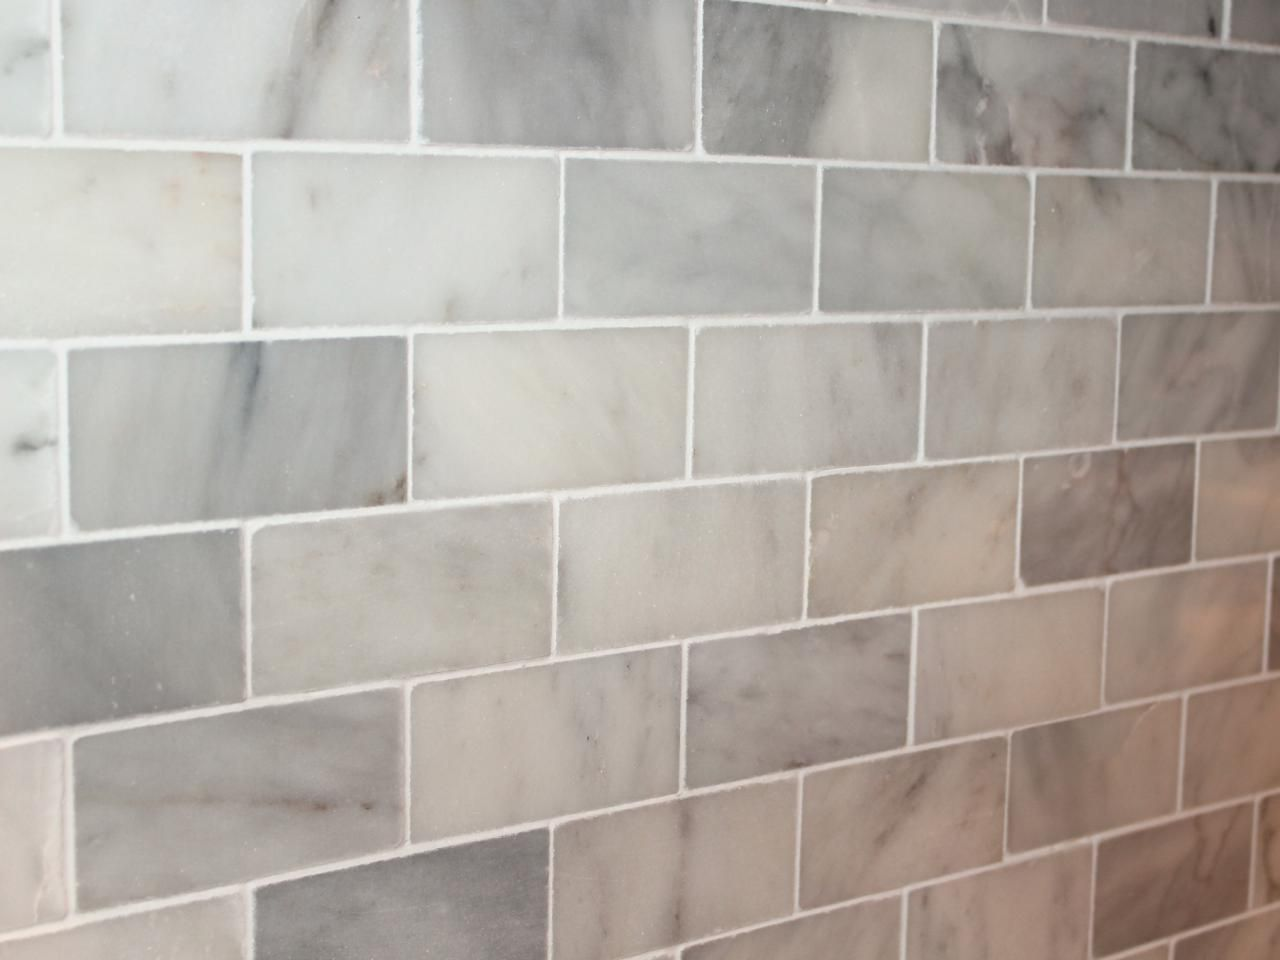 Visit carraratiles and design your home with luxury carrara visit carraratiles and design your home with luxury carrara marble tiles carraratiles dailygadgetfo Images